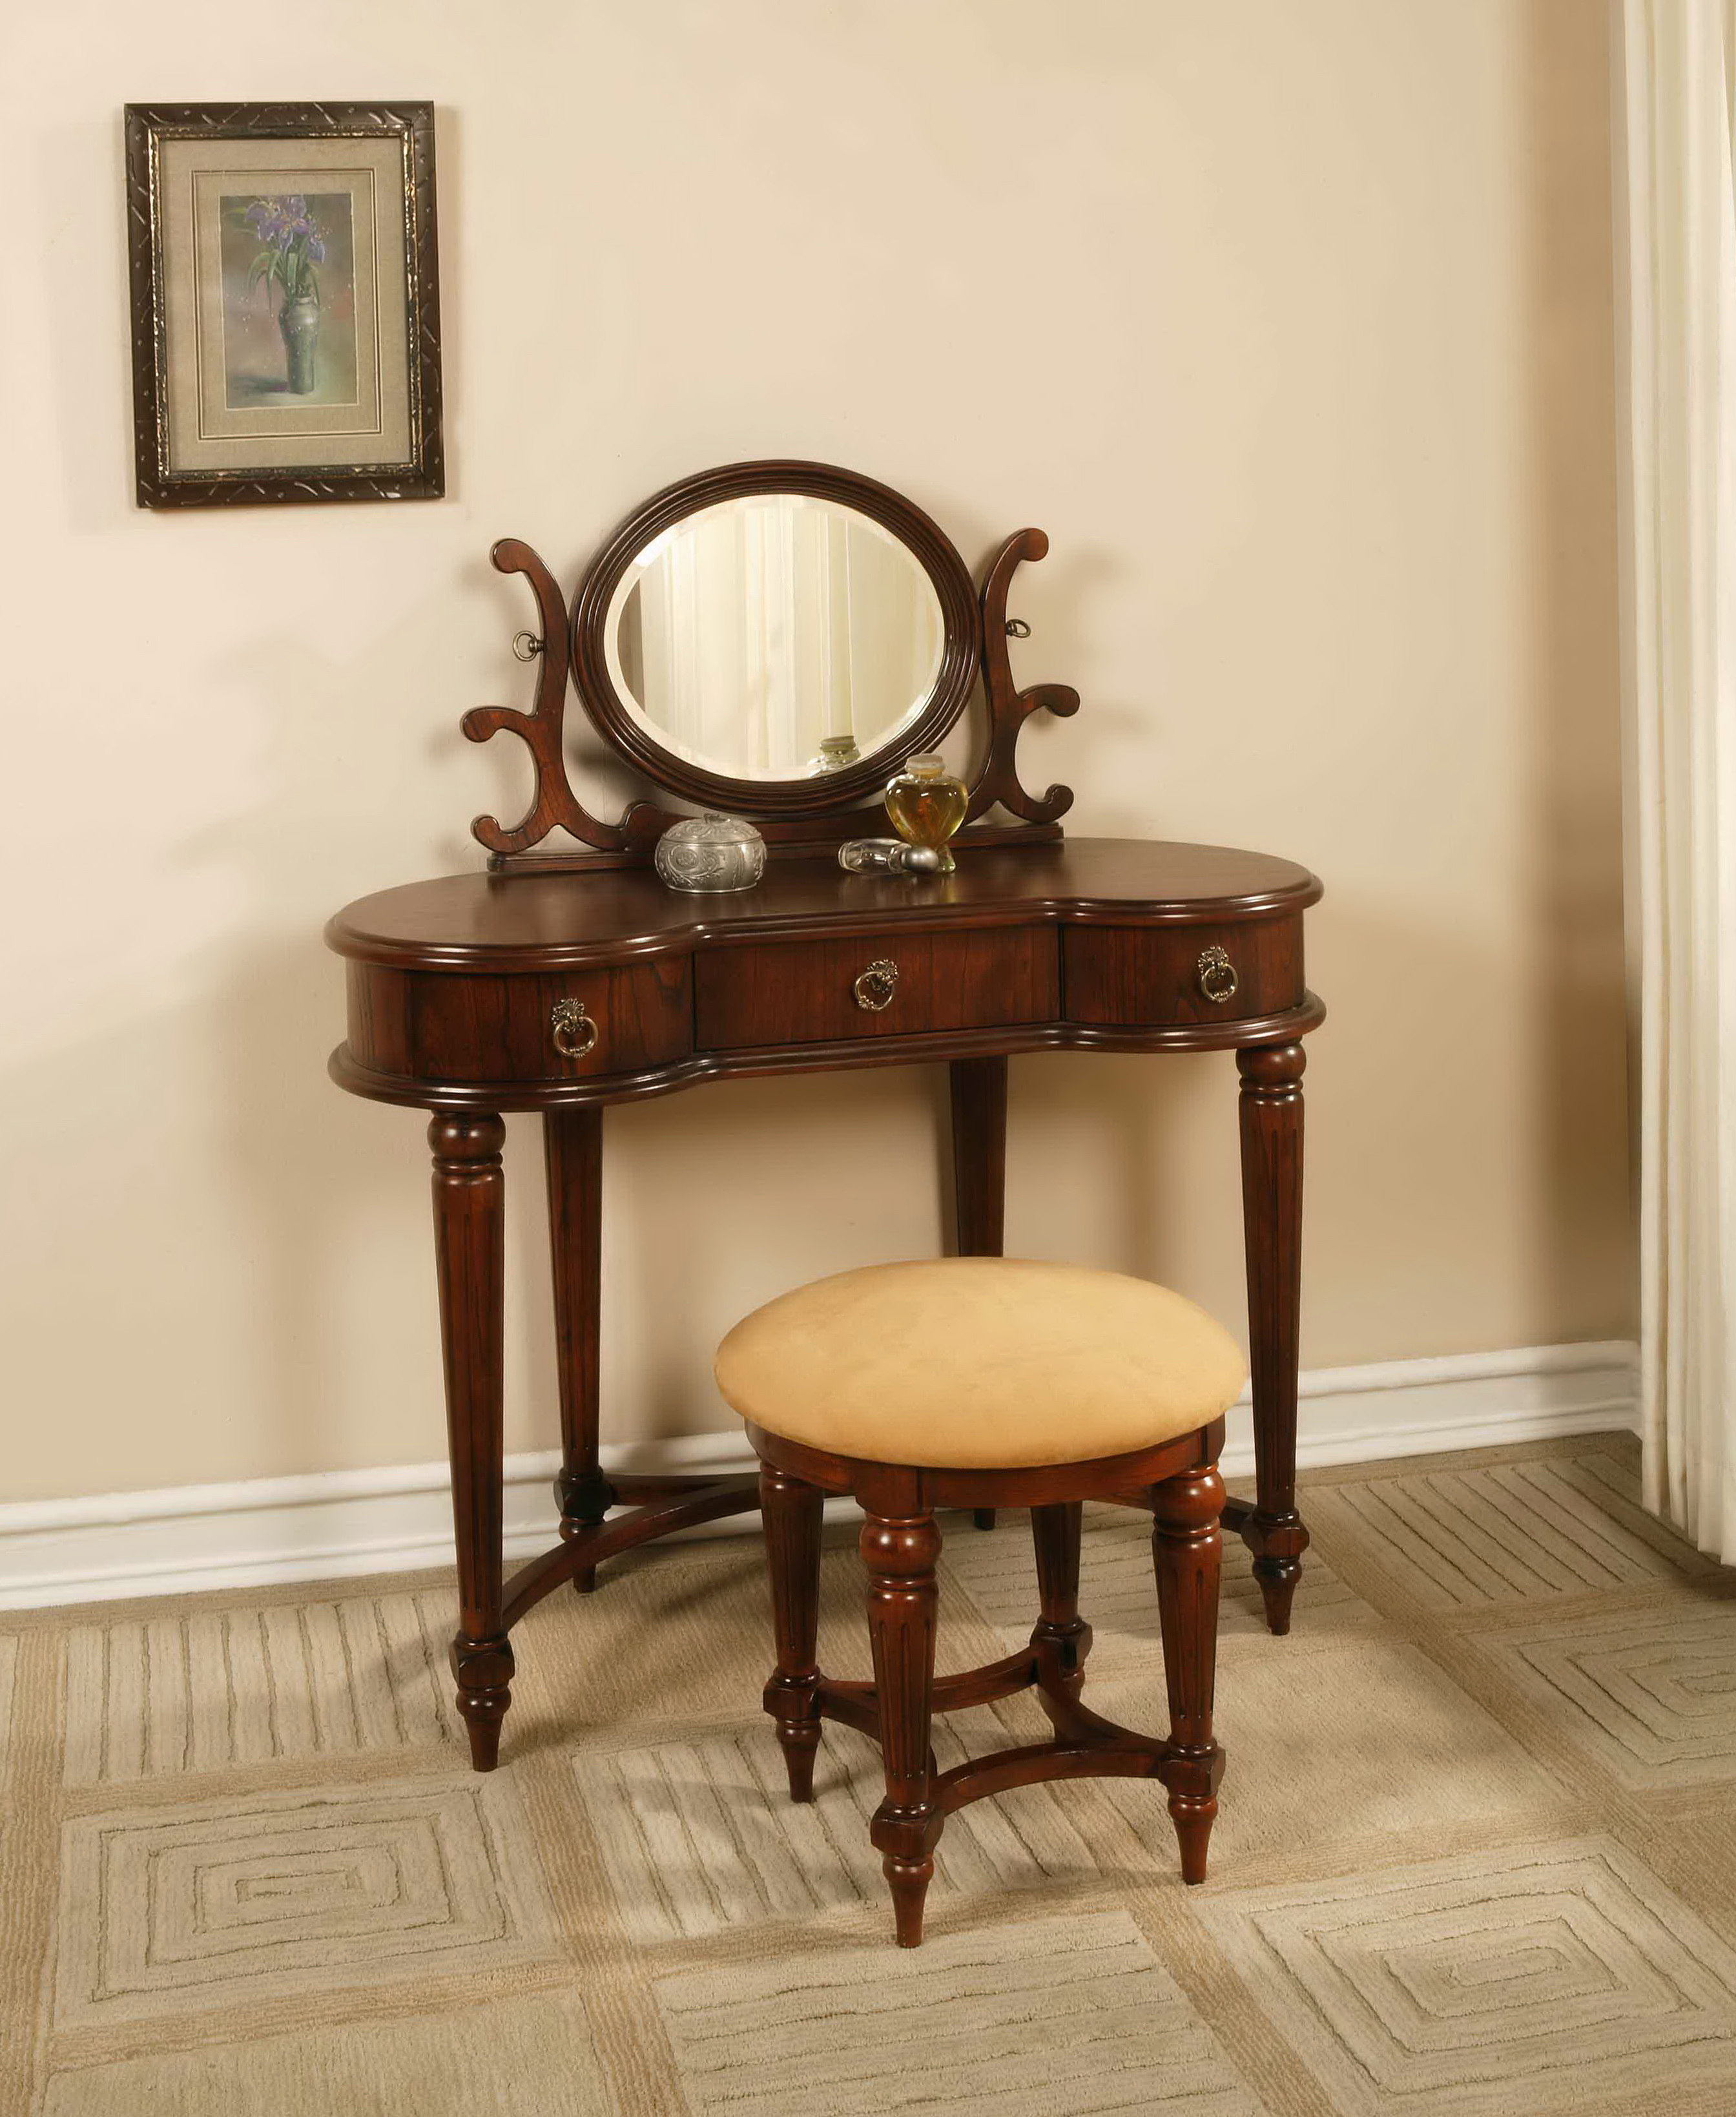 Antique vanity table with mirror home design ideas for Vanity with bench and mirror